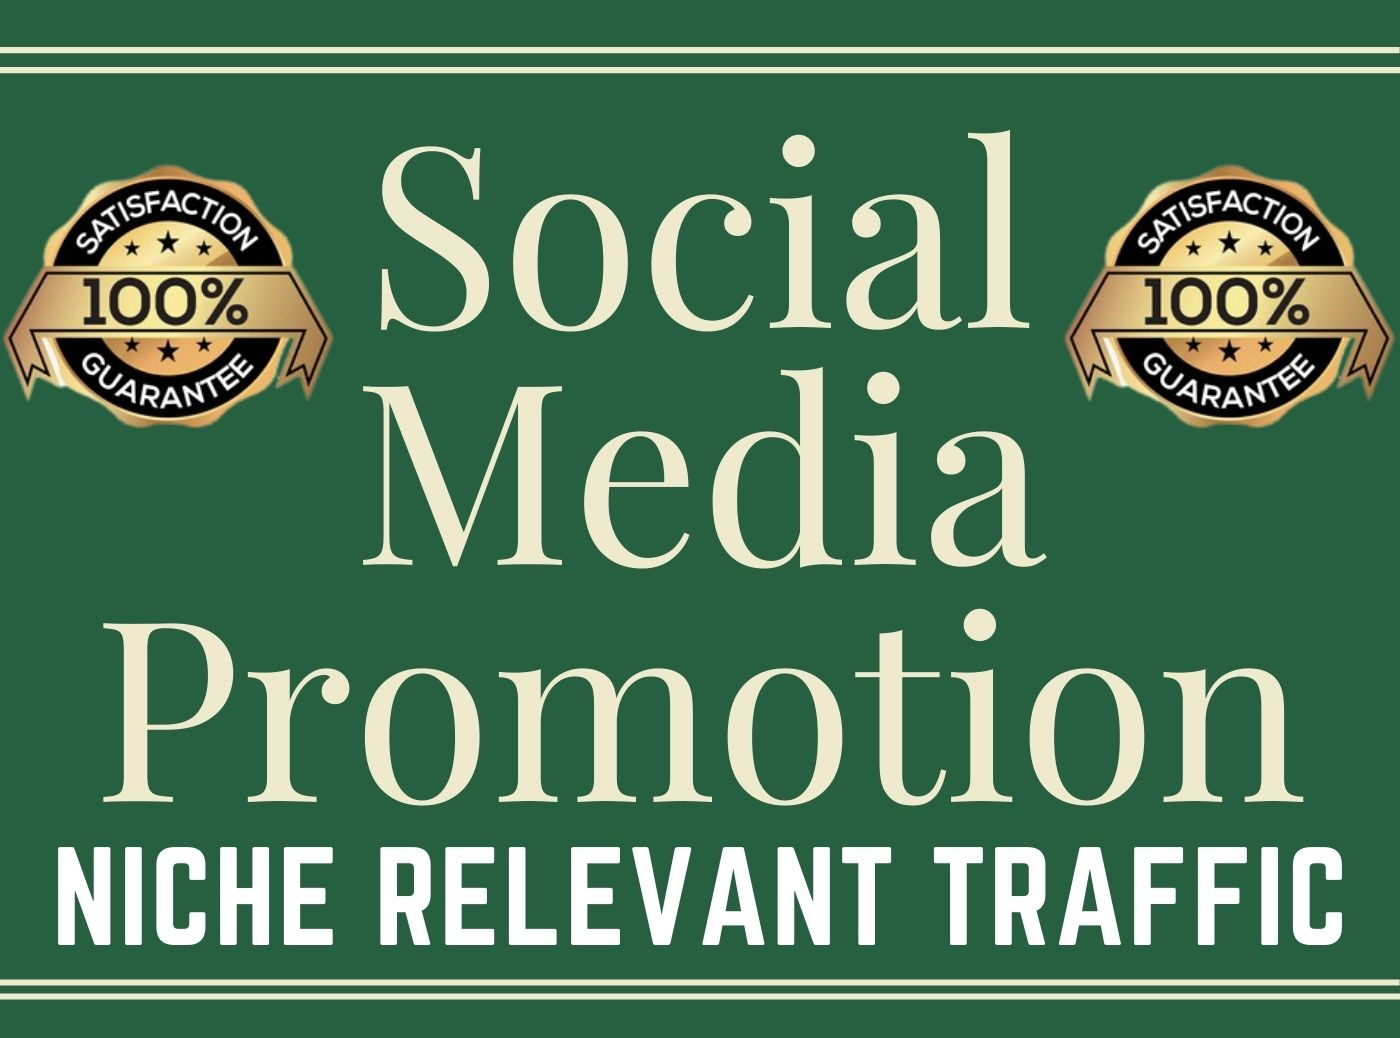 Get Online Organic Promotion world wide economy package